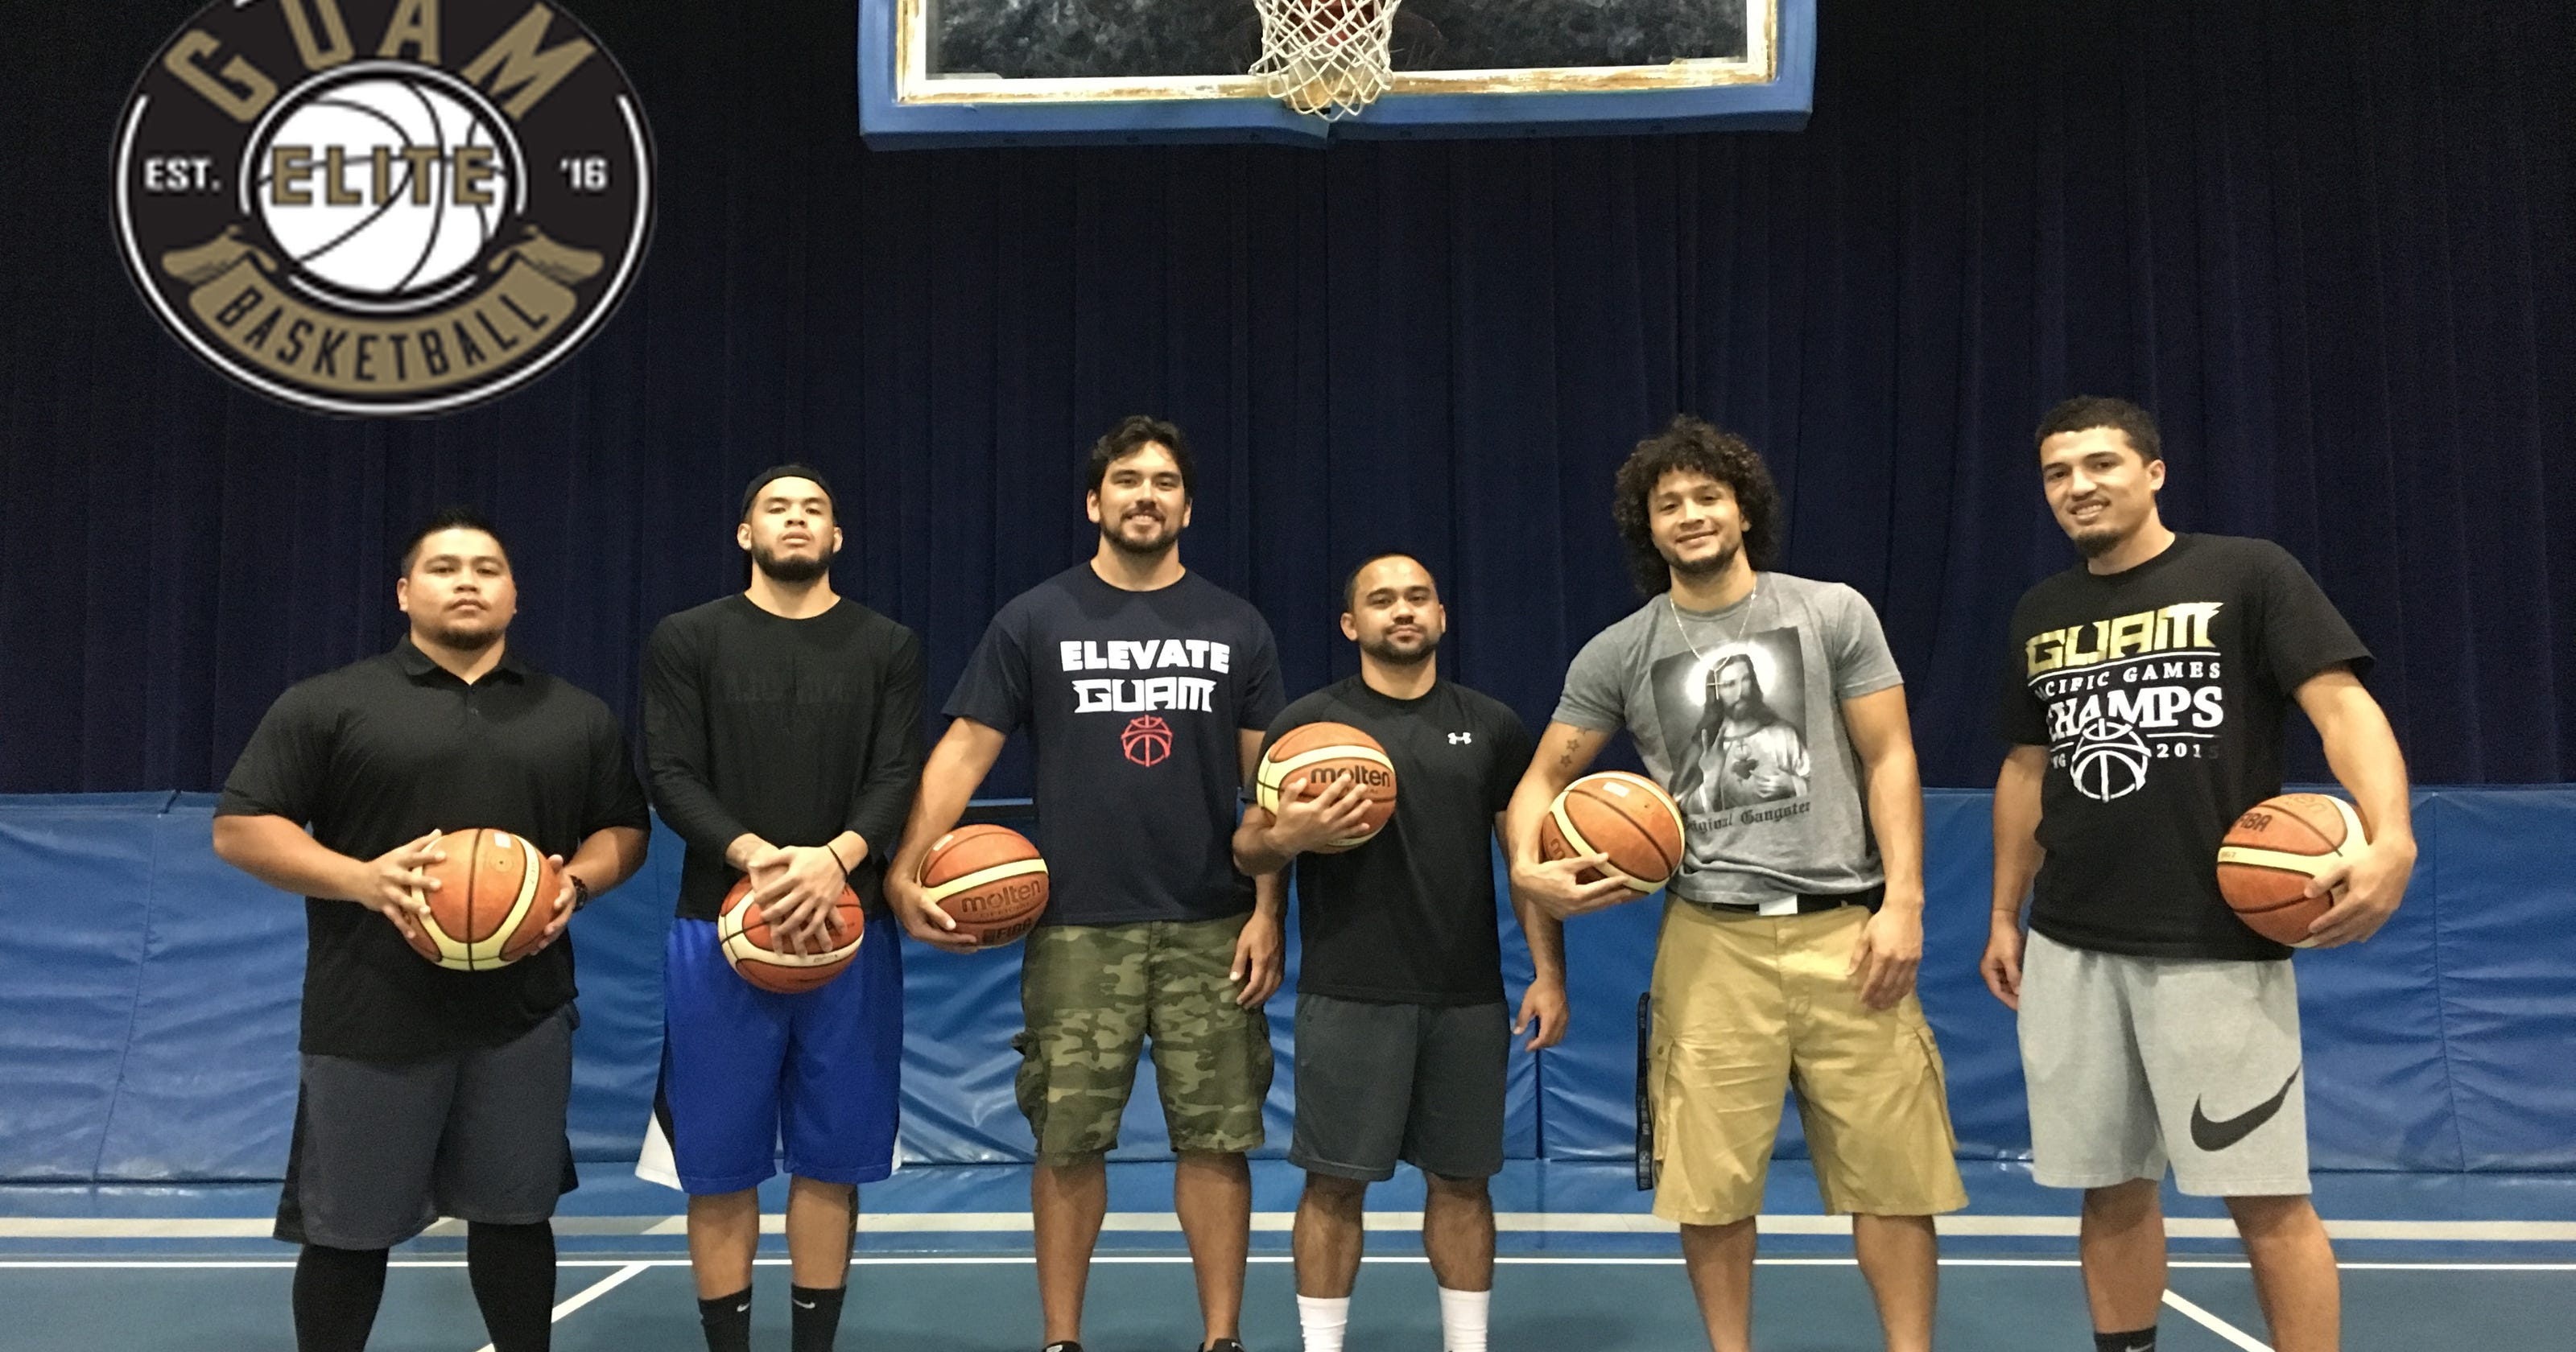 Guam Elite Basketball Academy aims to elevate hoops talent